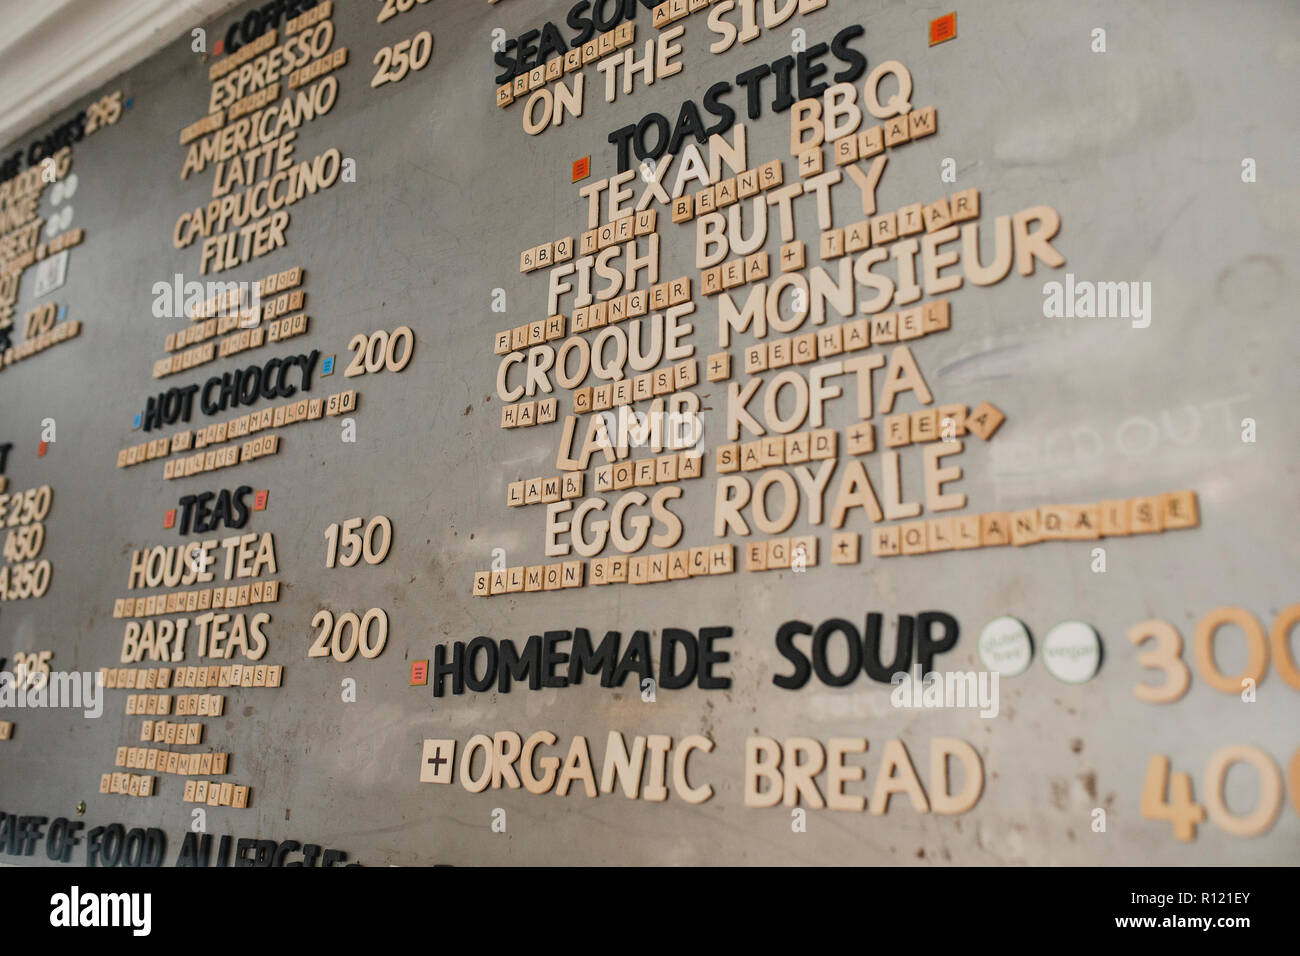 Low Angle View Of A Food Menu On The Wall In A Cafe They Have Used Little Tile Letters On The Wall To Spell Out The Different Items On The Menu Stock